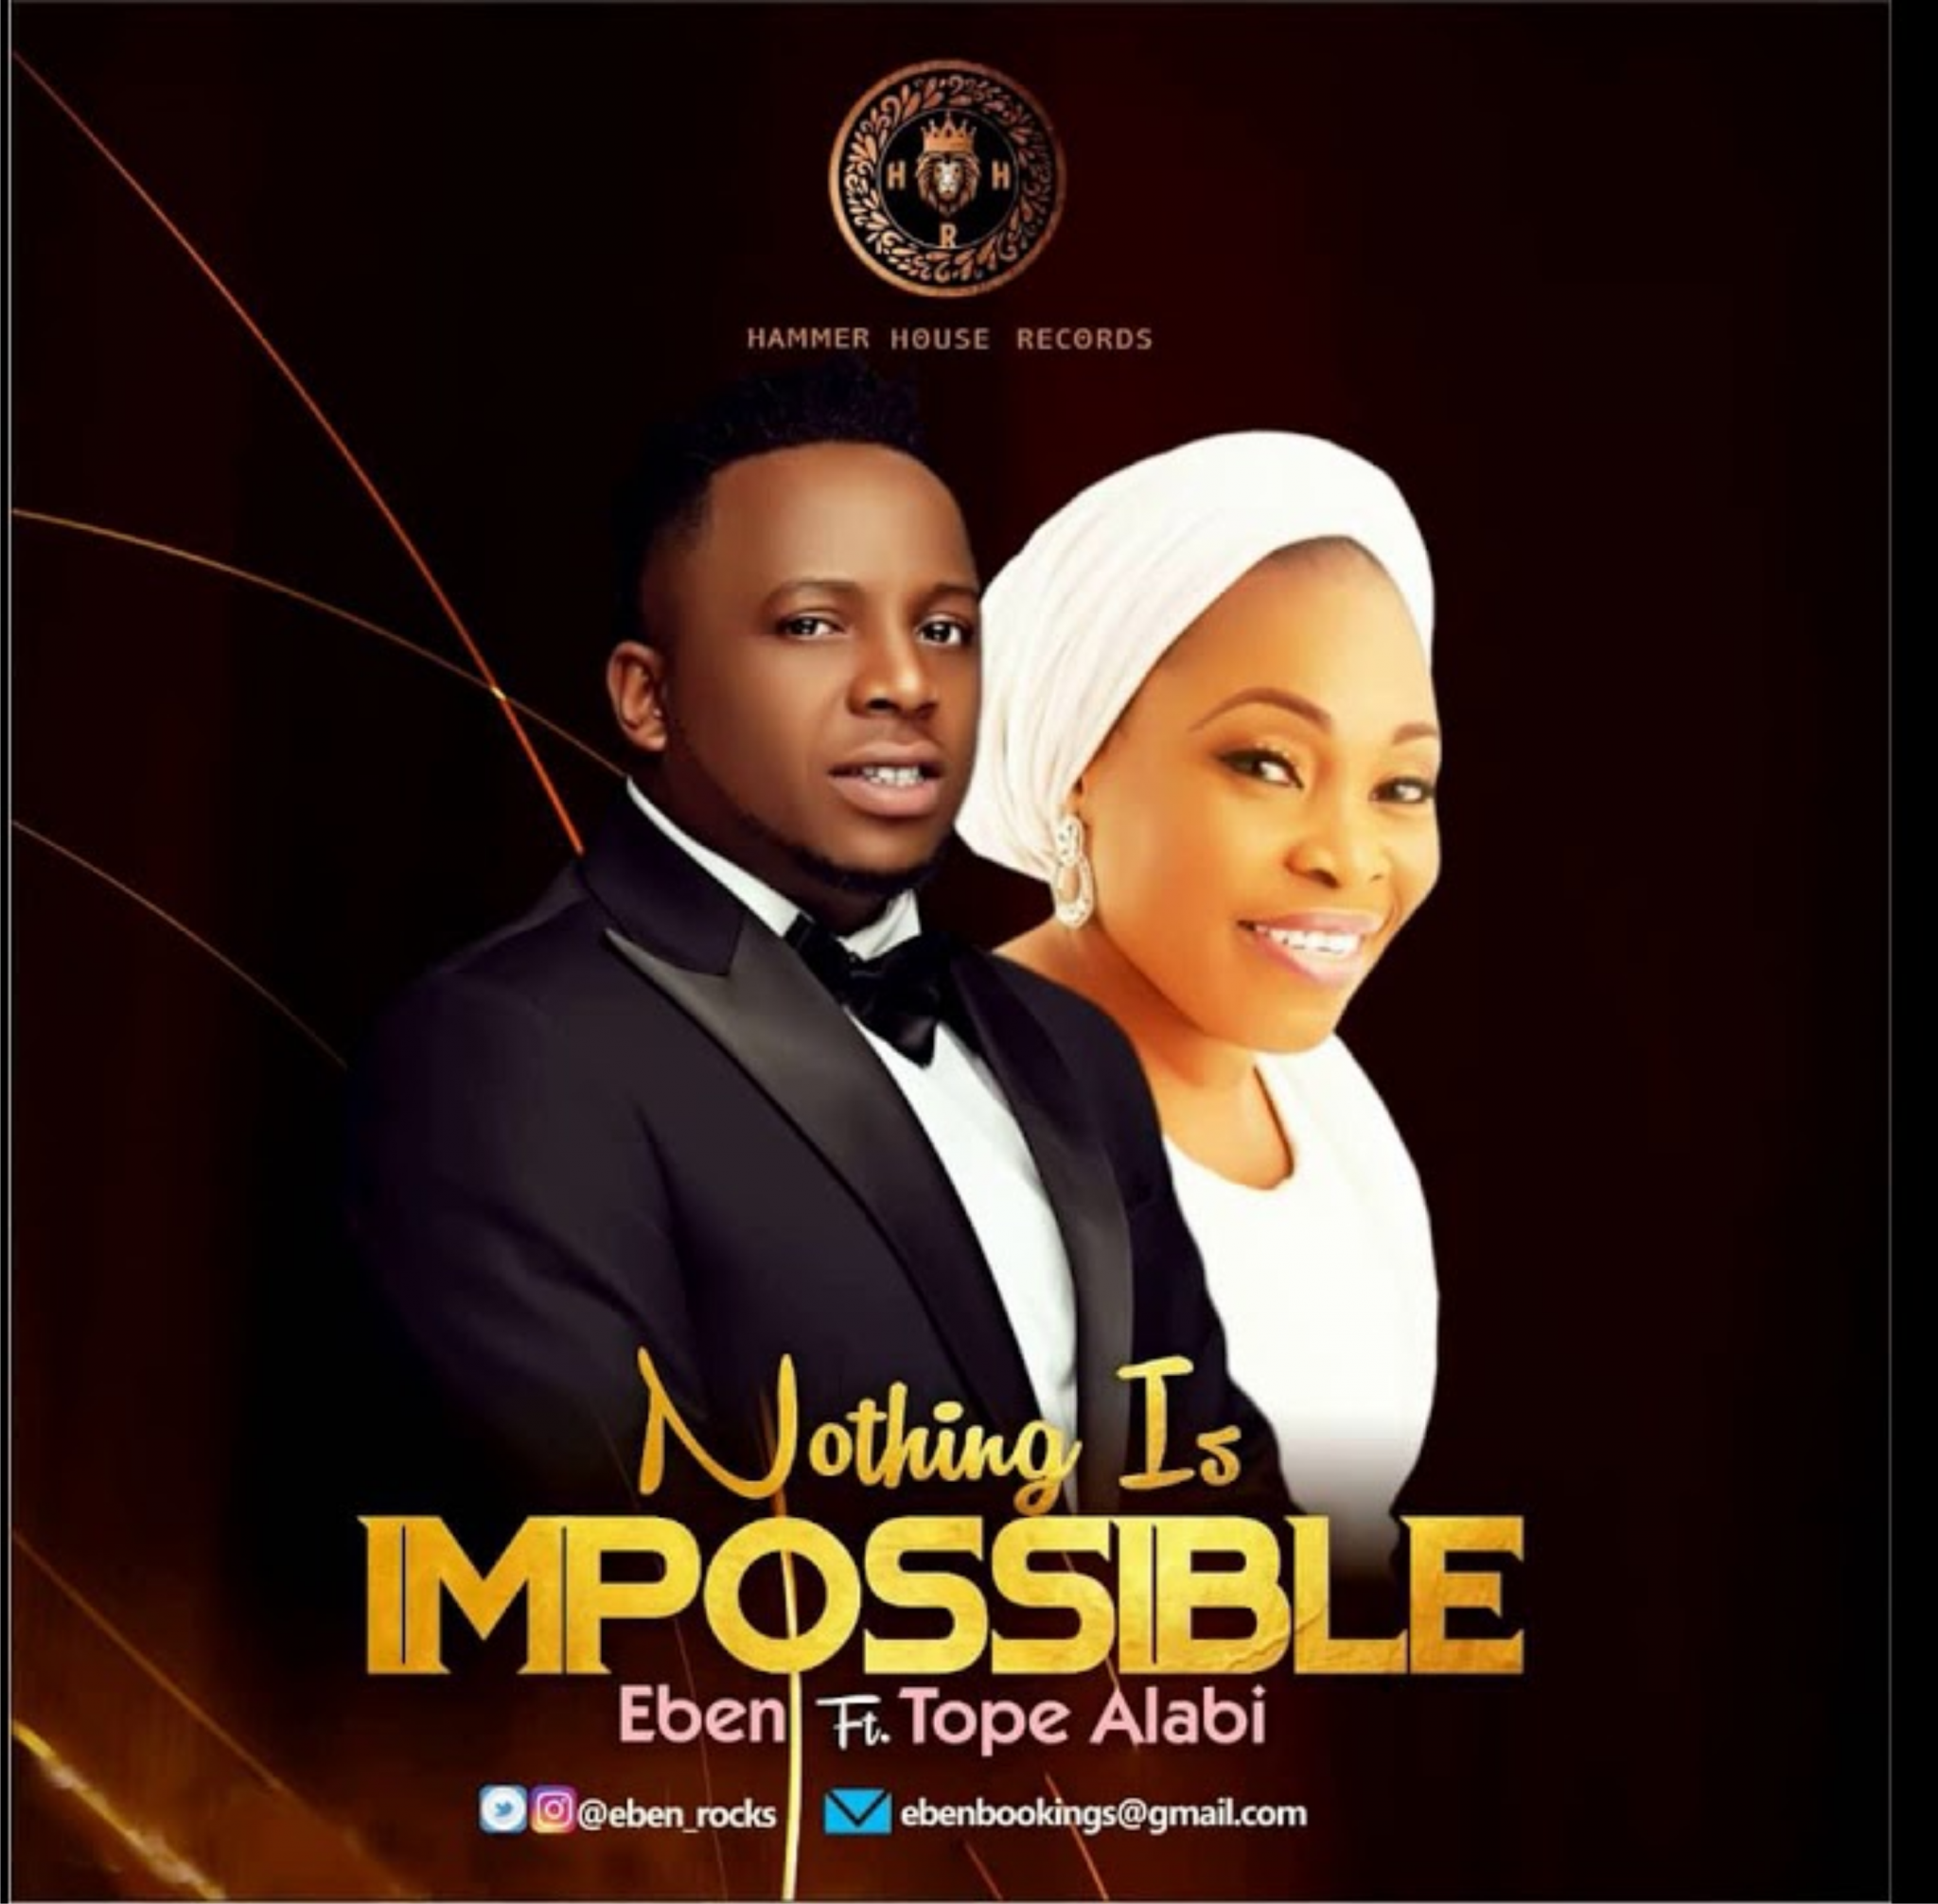 Download Mp3 Eben ft. Tope Alabi - Nothing is Impossible